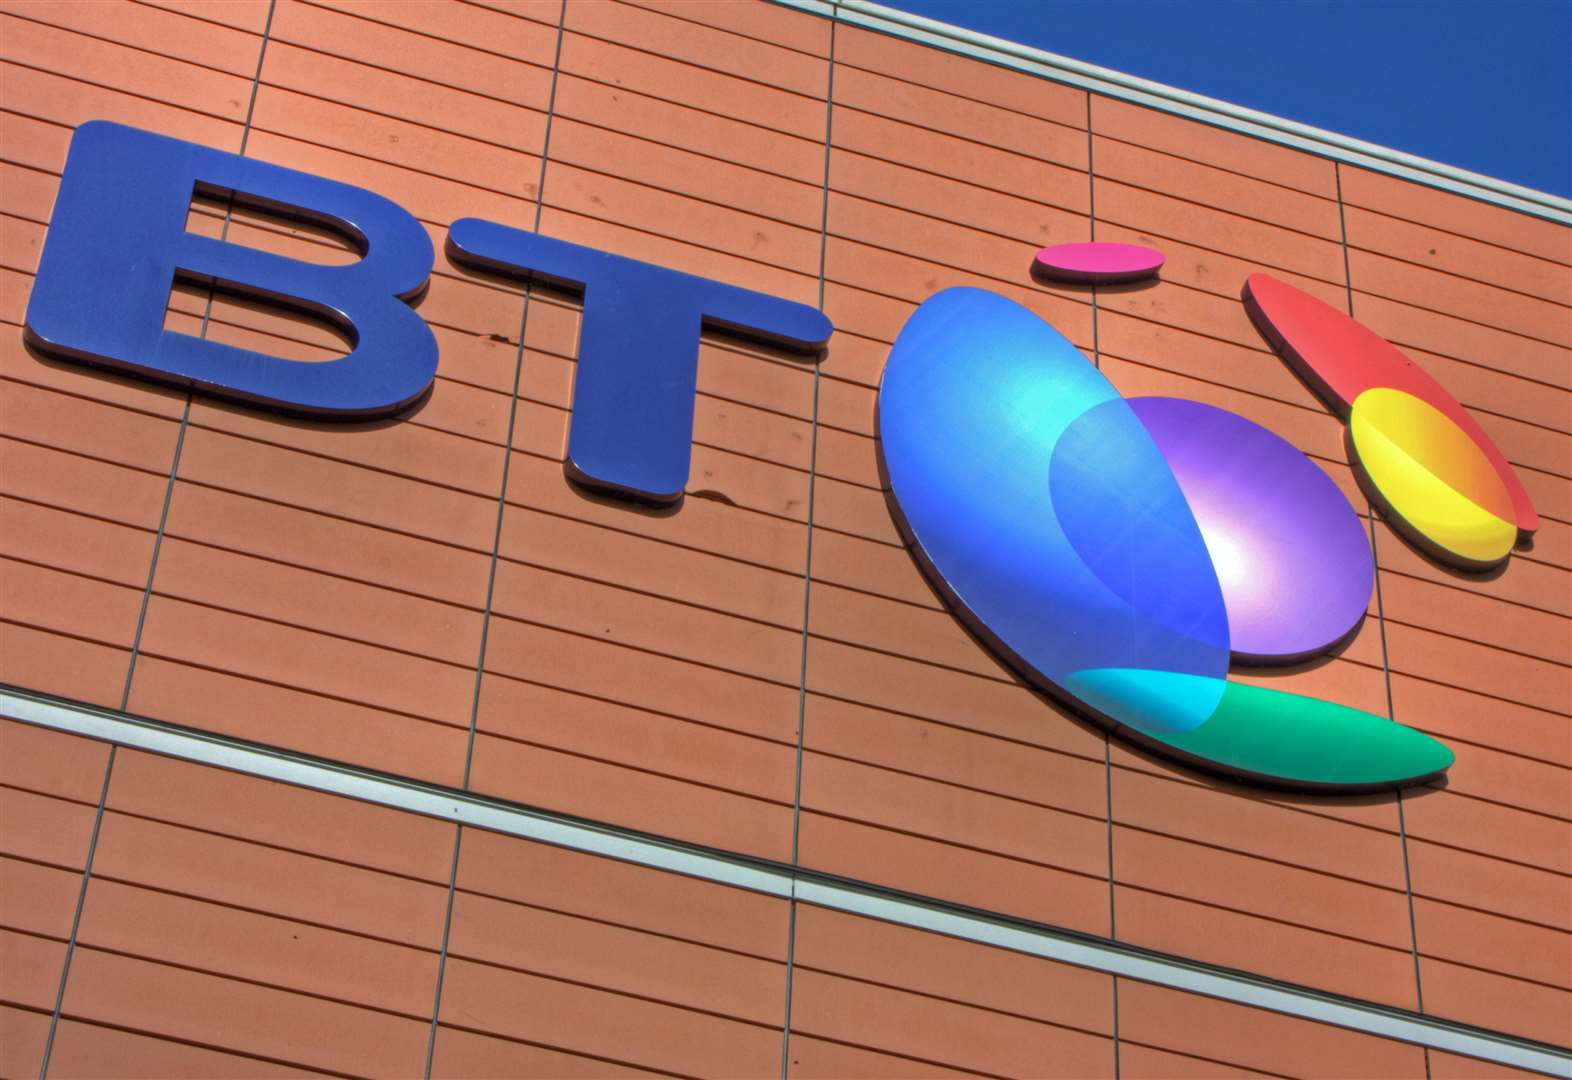 BT to scrap 13,000 jobs